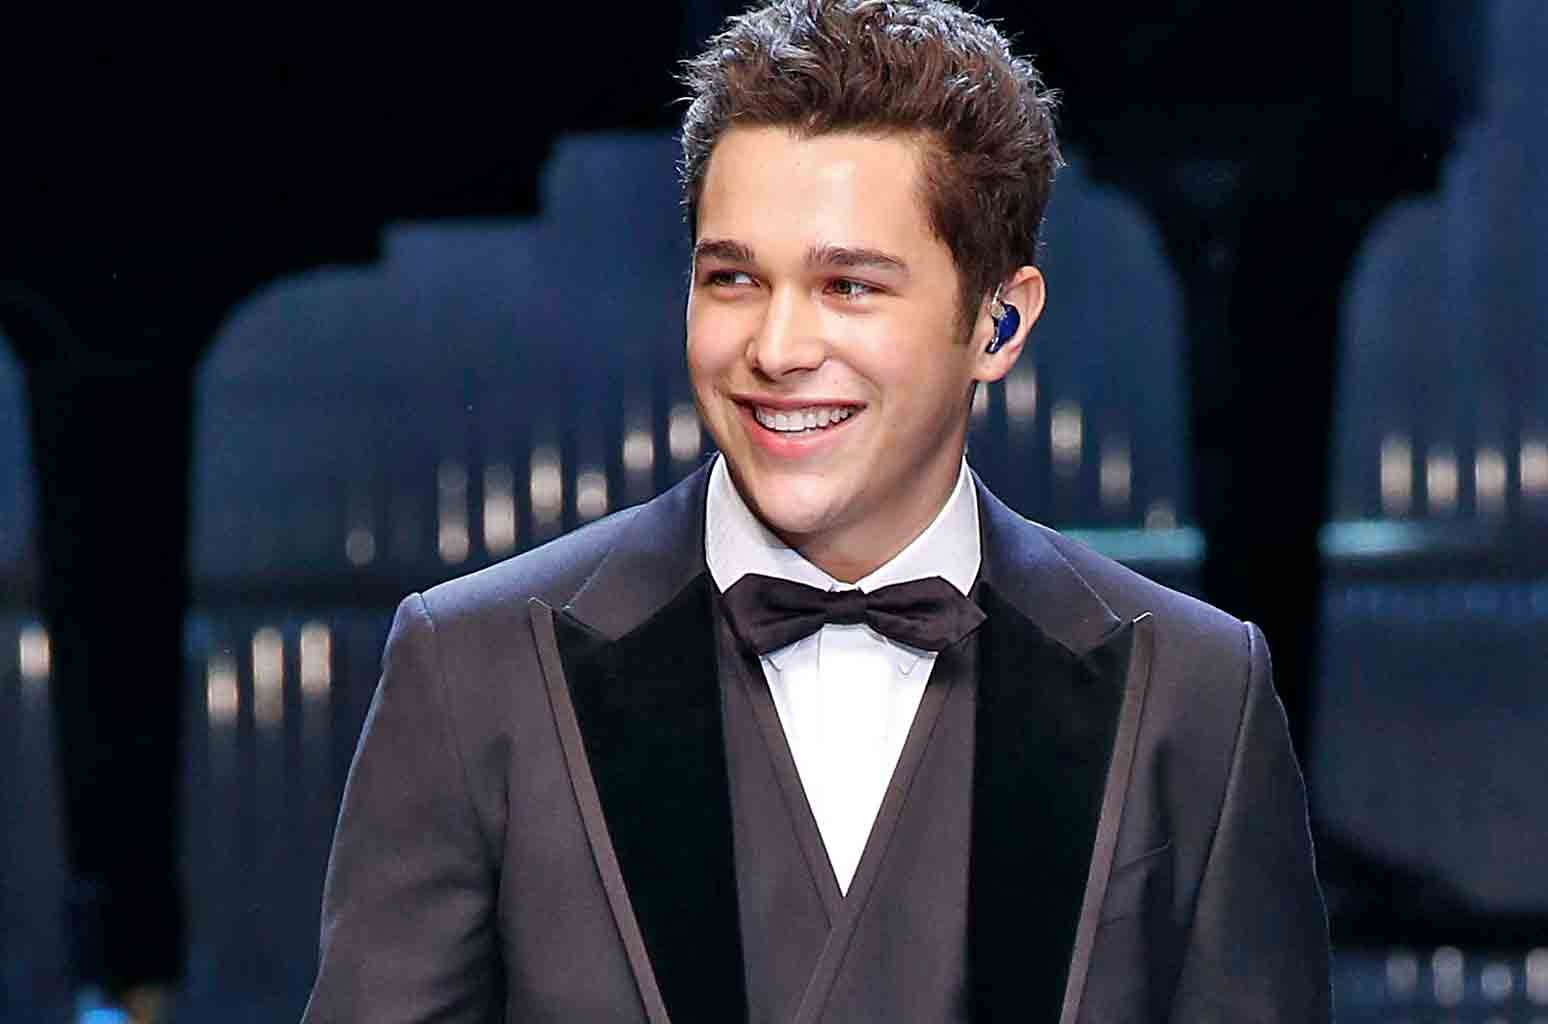 Austin Mahone walks the runway at the Dolce & Gabbana Ready to Wear fashion show during Milan Fashion Week Fall/Winter 2017/18 on Feb. 26, 2017 in Milan, Italy.